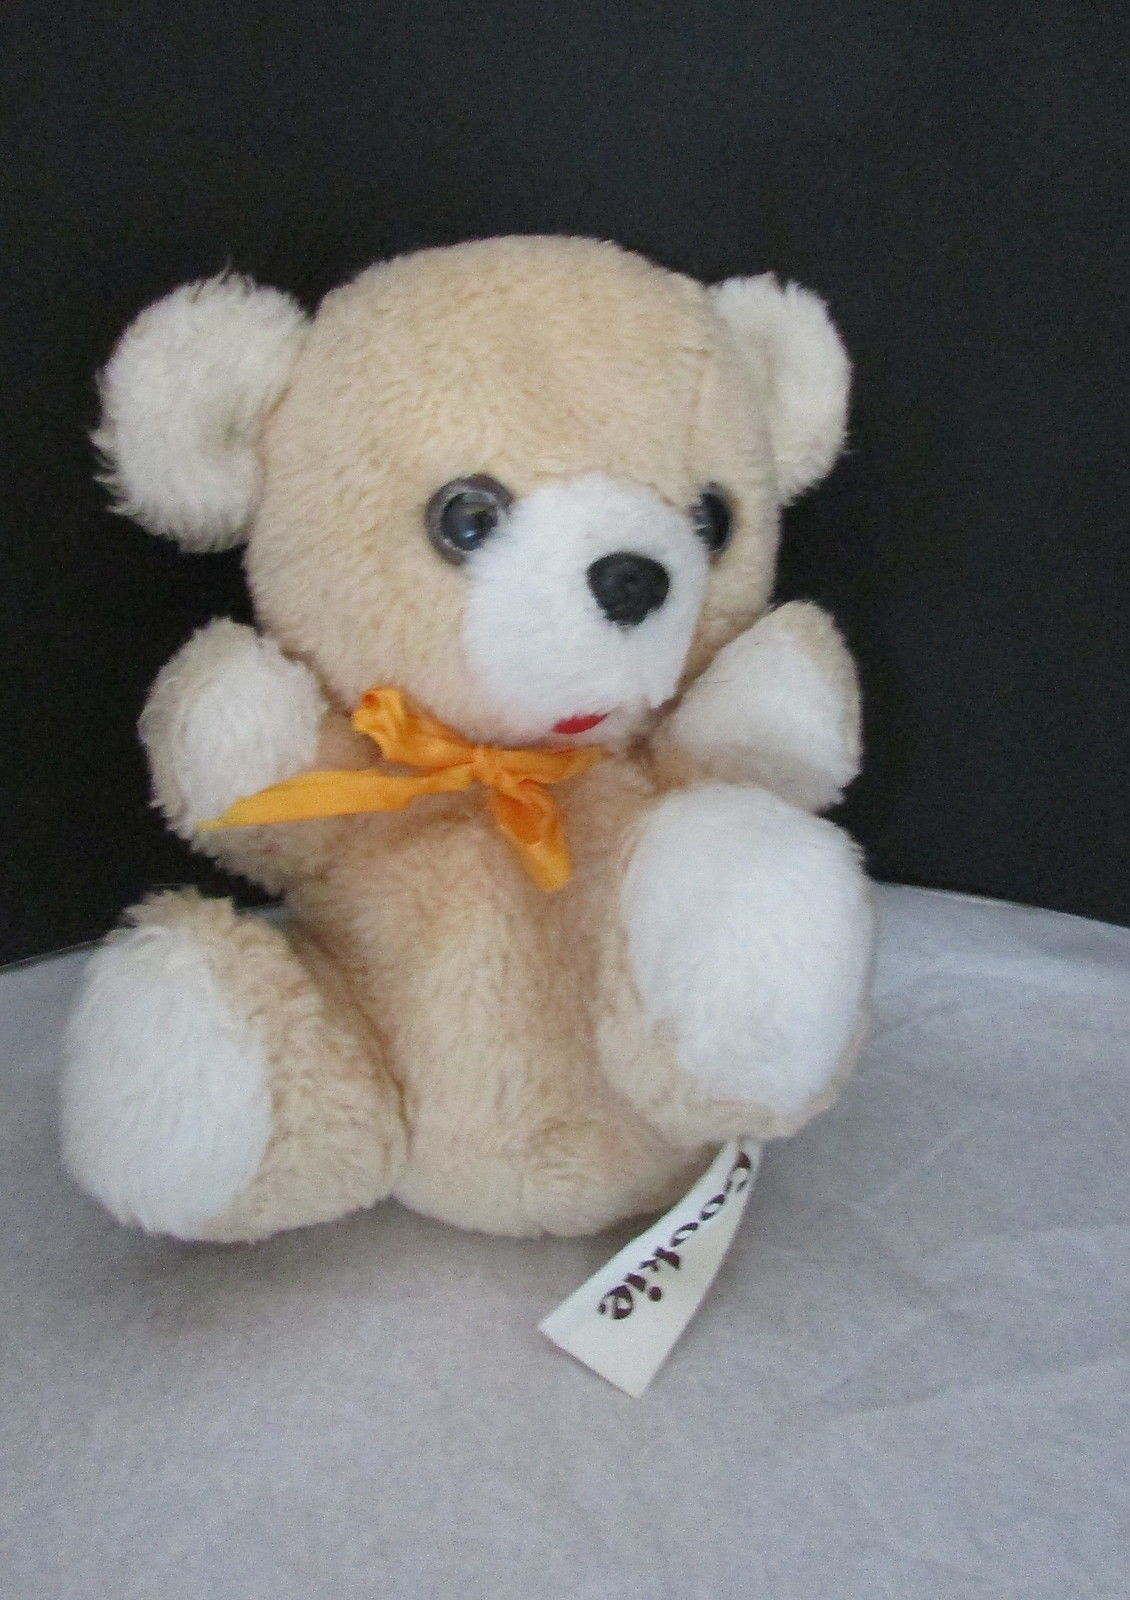 Primary image for Vintage 1978 Russ Berrie & CO. Plush cream tan teddy bear Cookie  7""